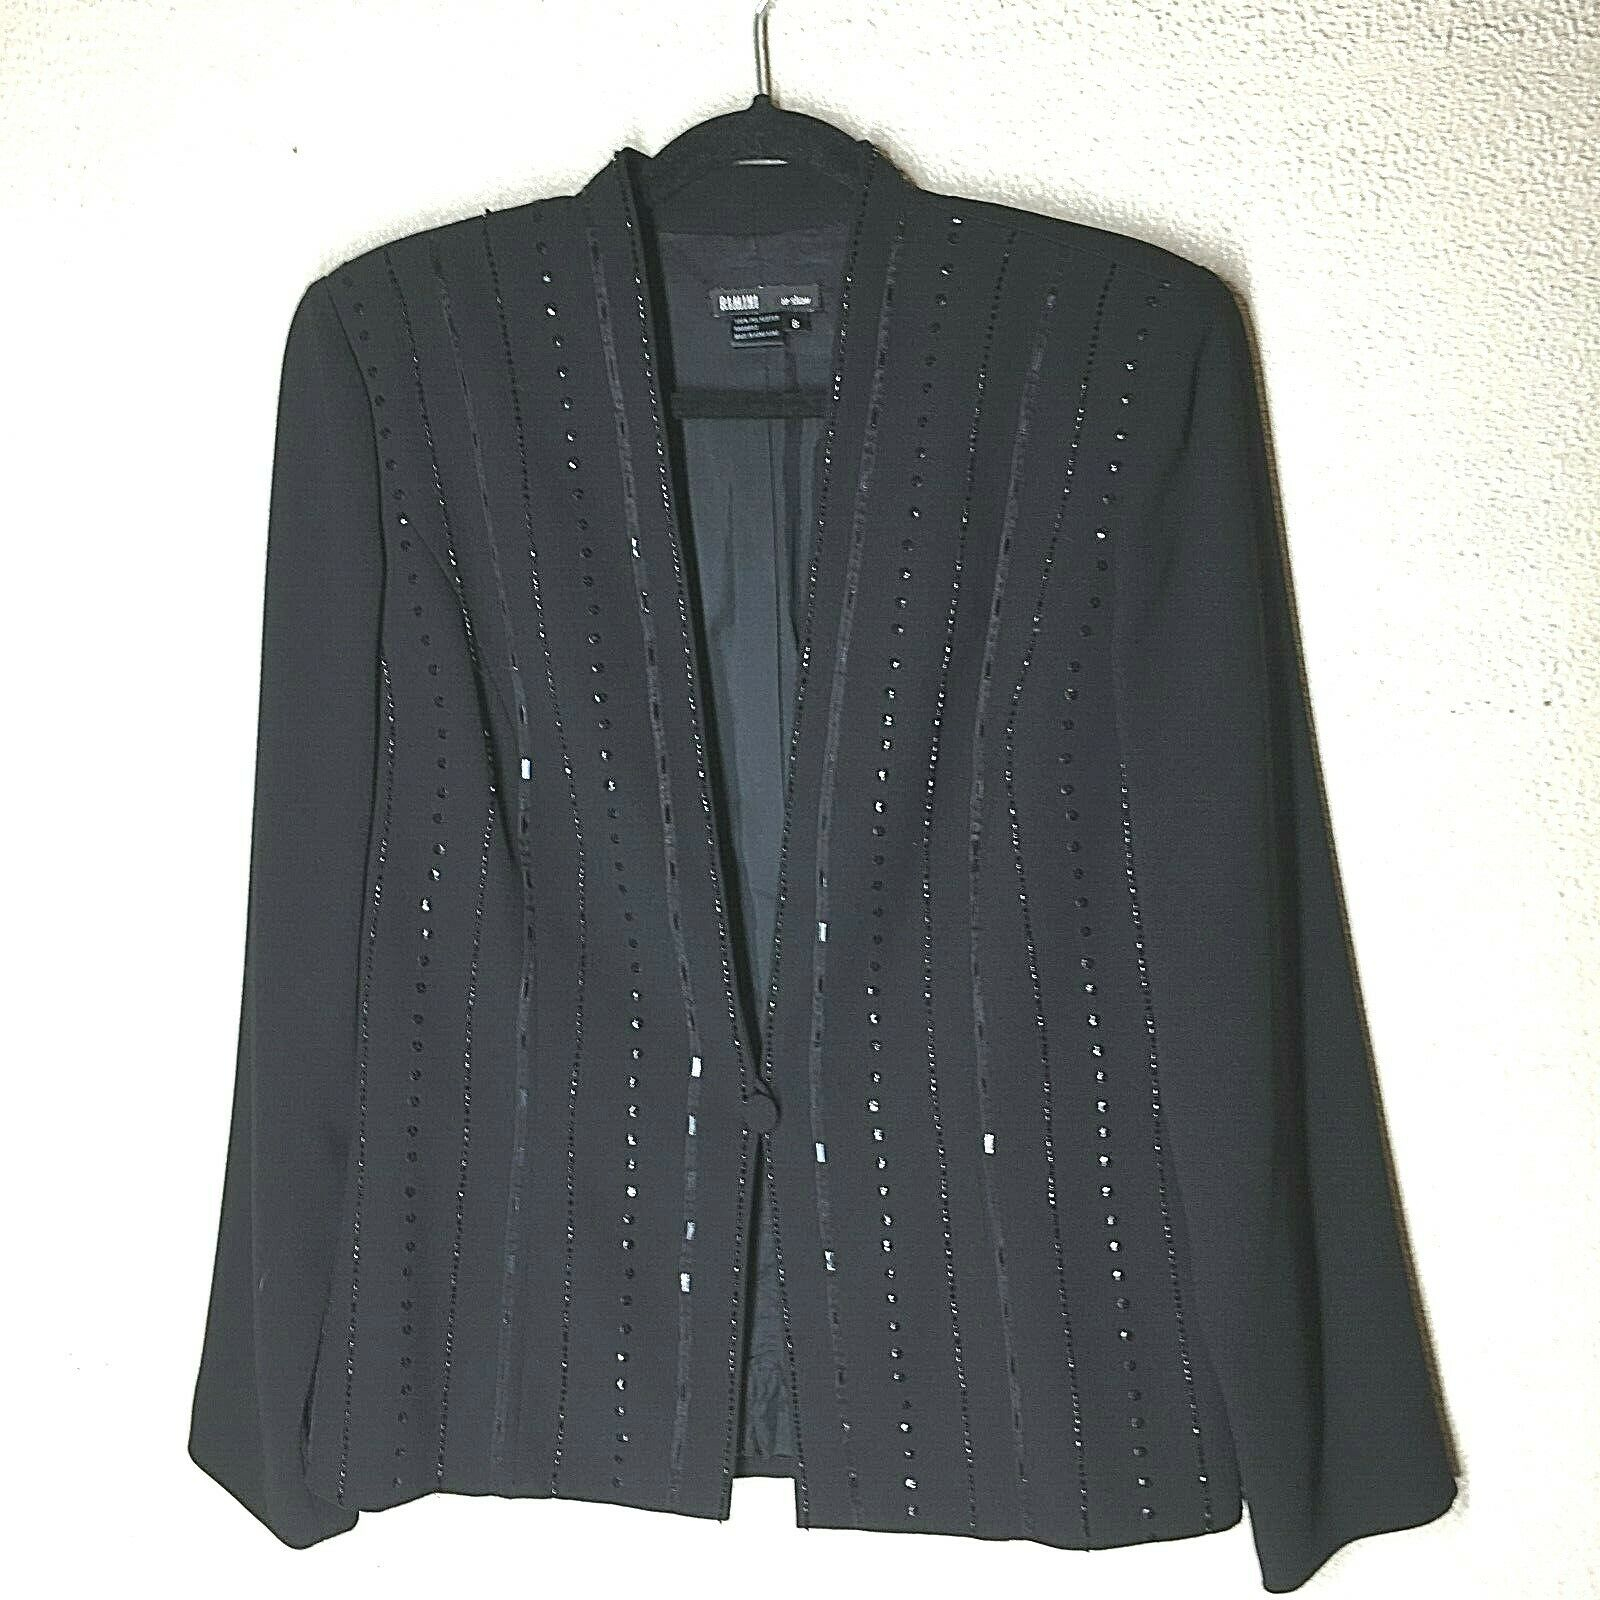 Rimini Black Embellished Evening Jacket Womens Size 8 Sequin Accents Fully Lined